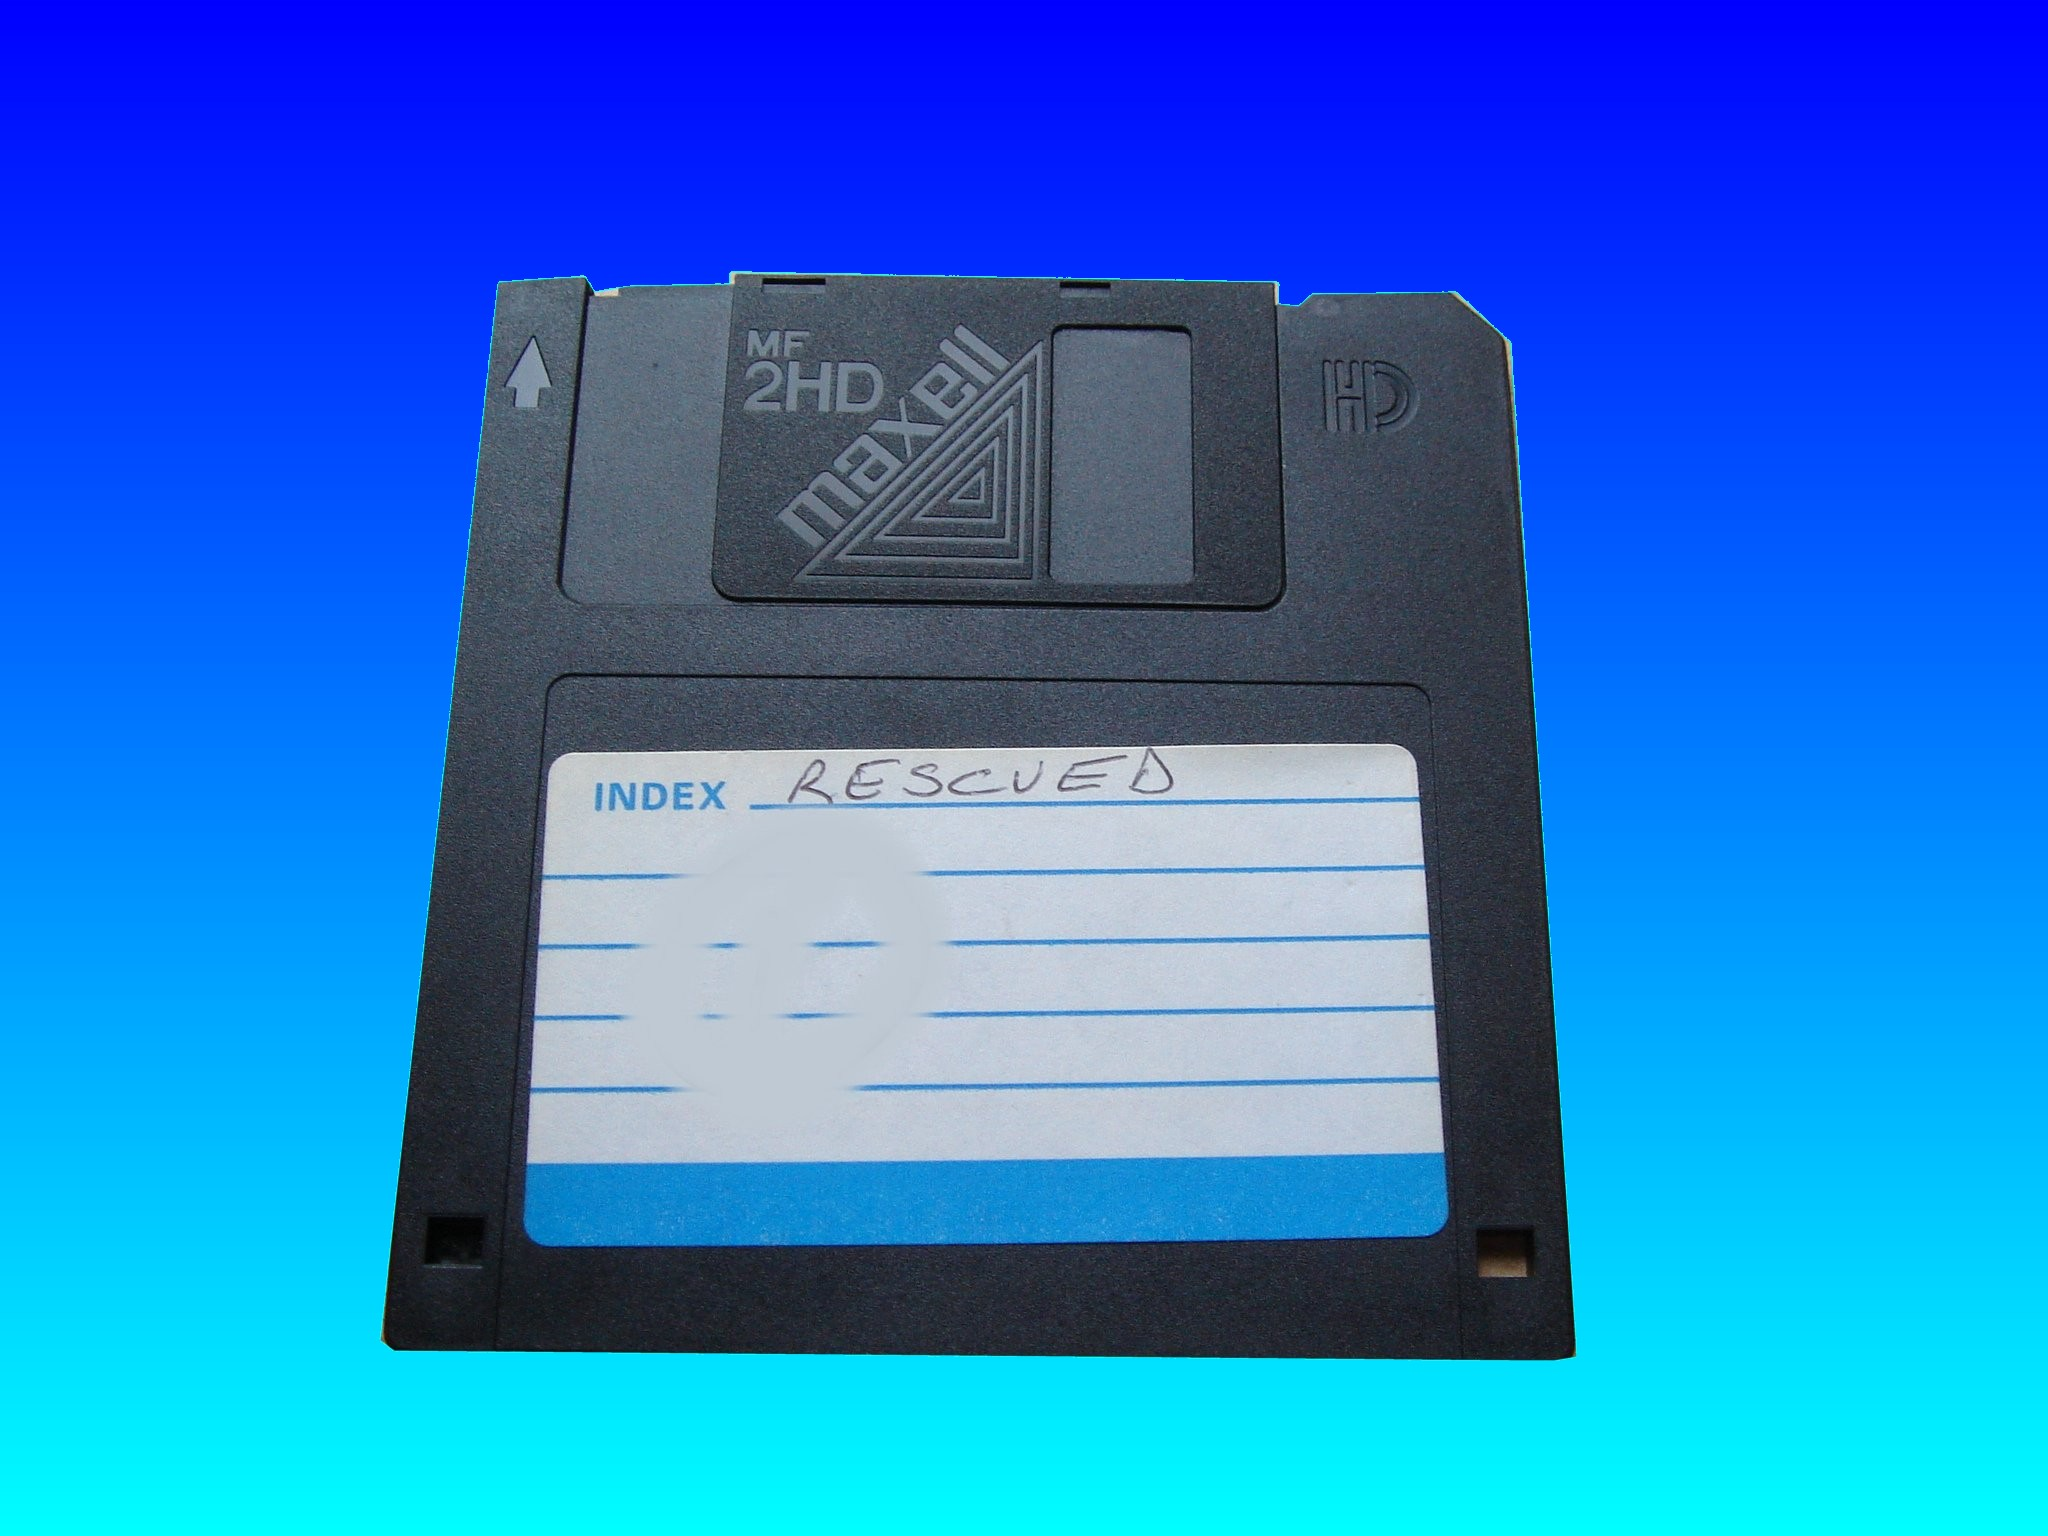 3.5inch floppy disks that was not recognised and would not open on the computer. It needed it's files transferred to Windows Word.